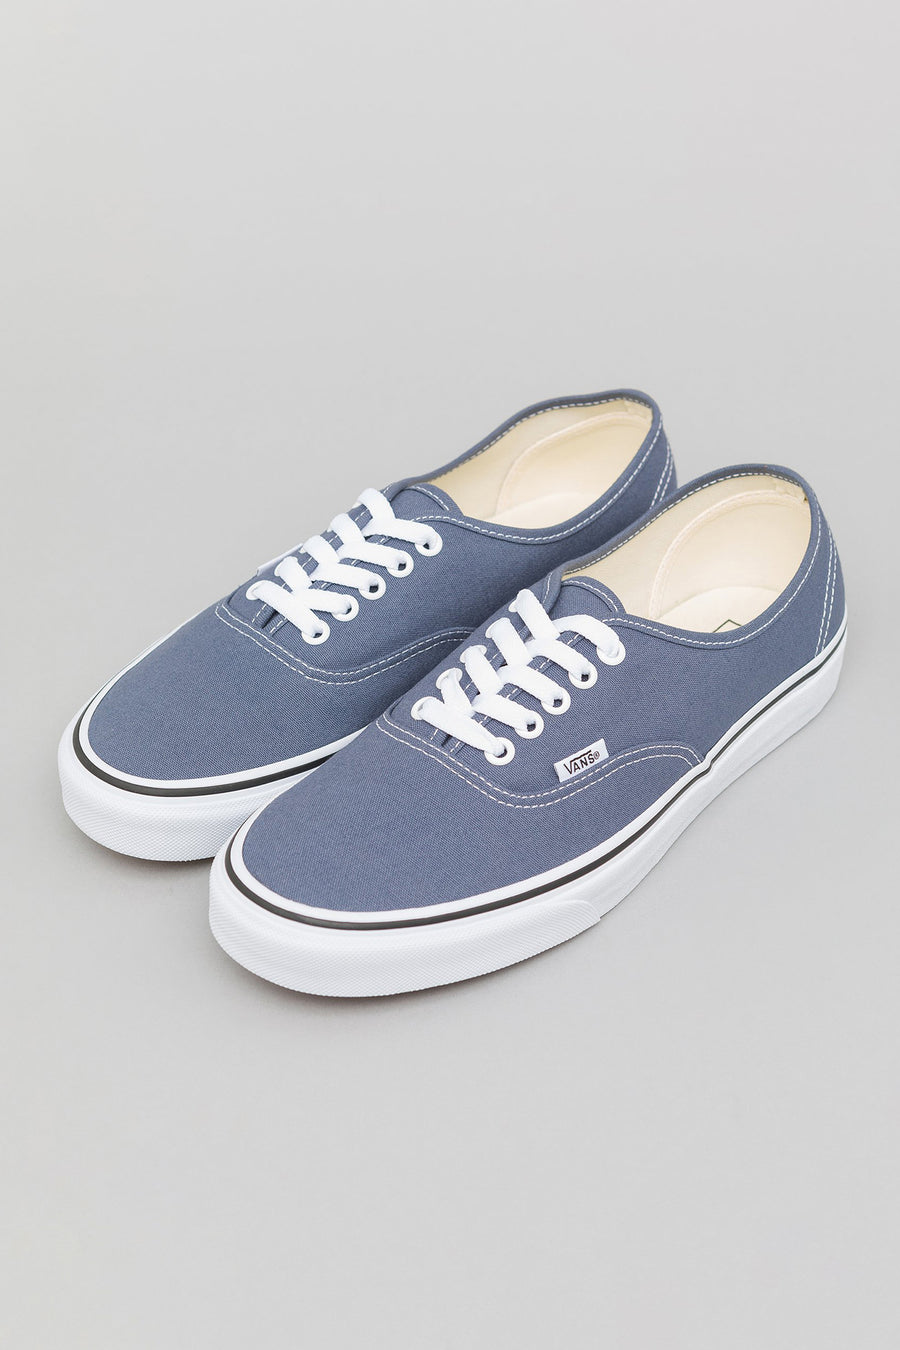 Vans Authentic in Grisaille/True White - Notre